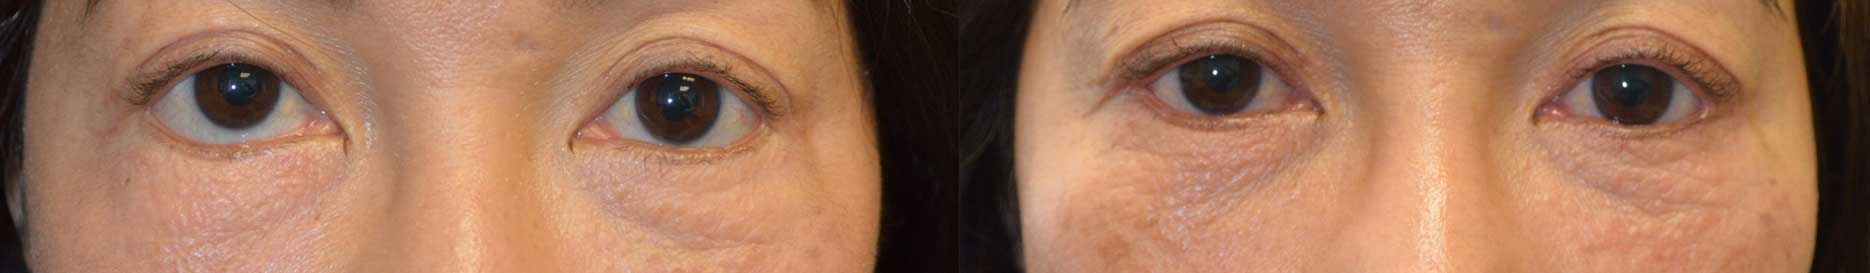 lower eyelid retraction after previous transcutaneous lower blepharoplasty